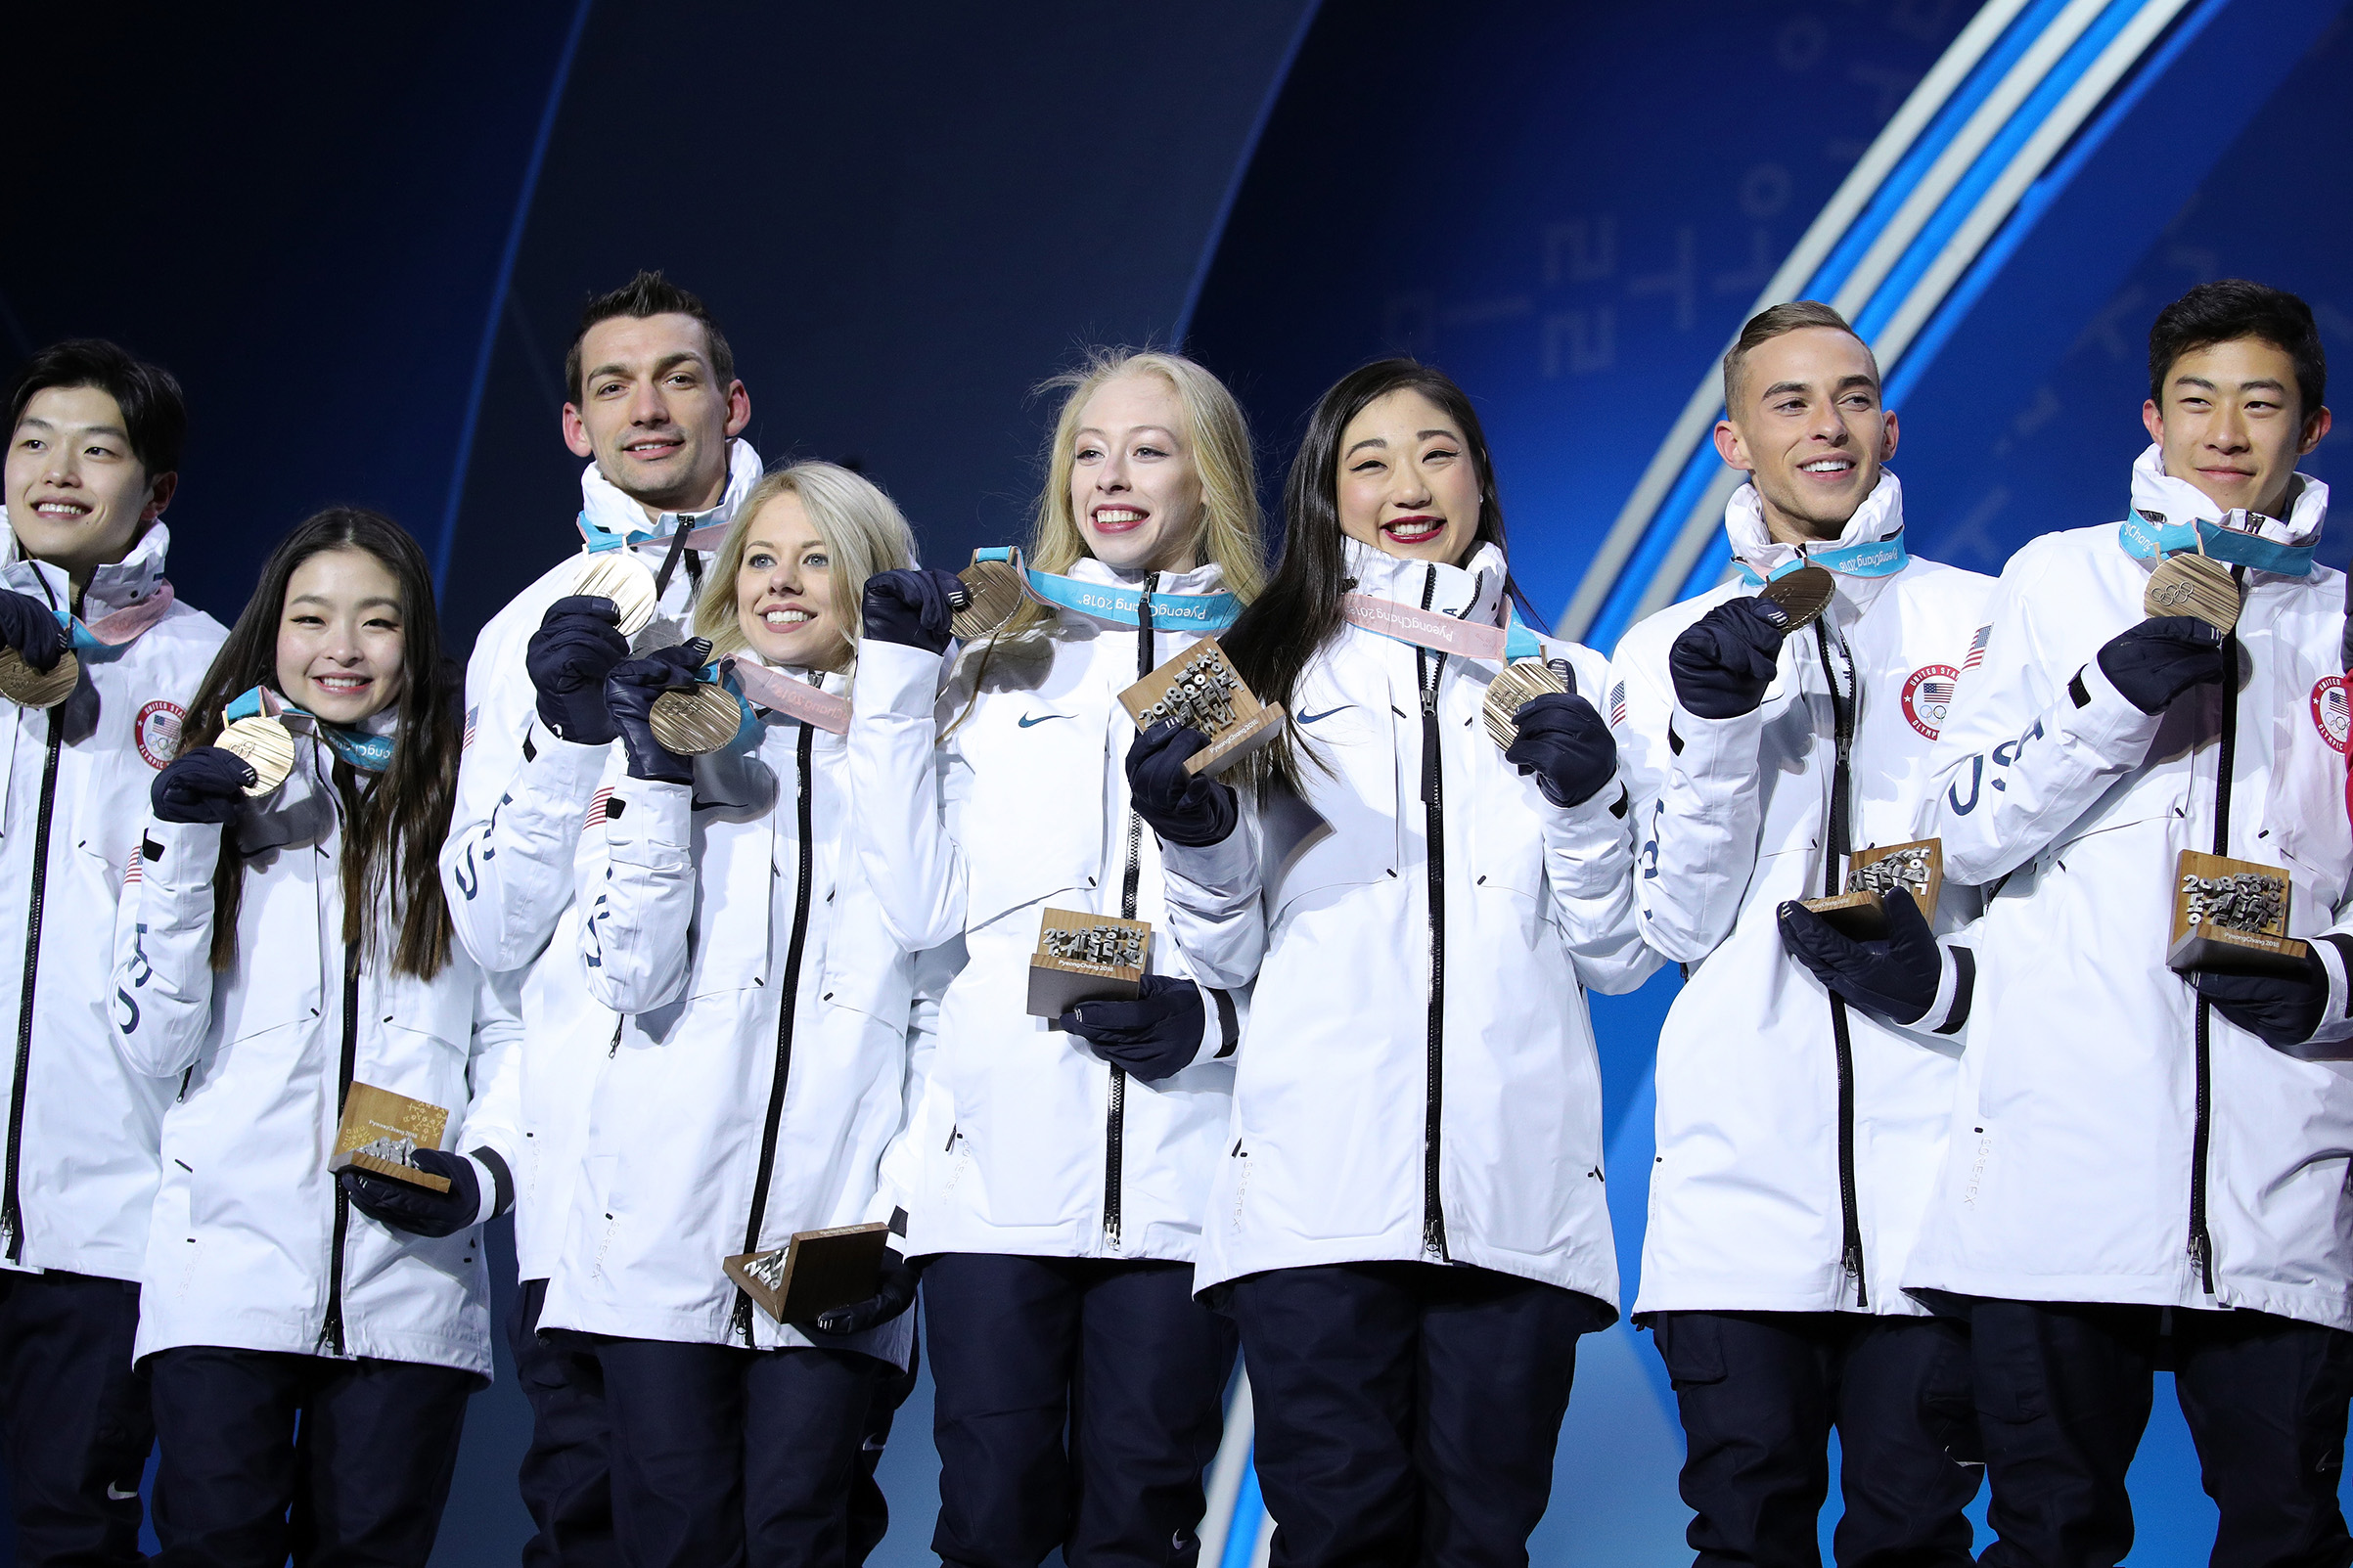 Bronze medalists Alex Shibutani, Maia Shibutani, Chris Knierim, Alexa Scimeca Knierim, Bradie Tennell, Mirai Nagasu, Adam Rippon and Nathan Chen of Team United States celebrate during the victory ceremony after the Figure Skating Team Event on Feb. 12, 2018.